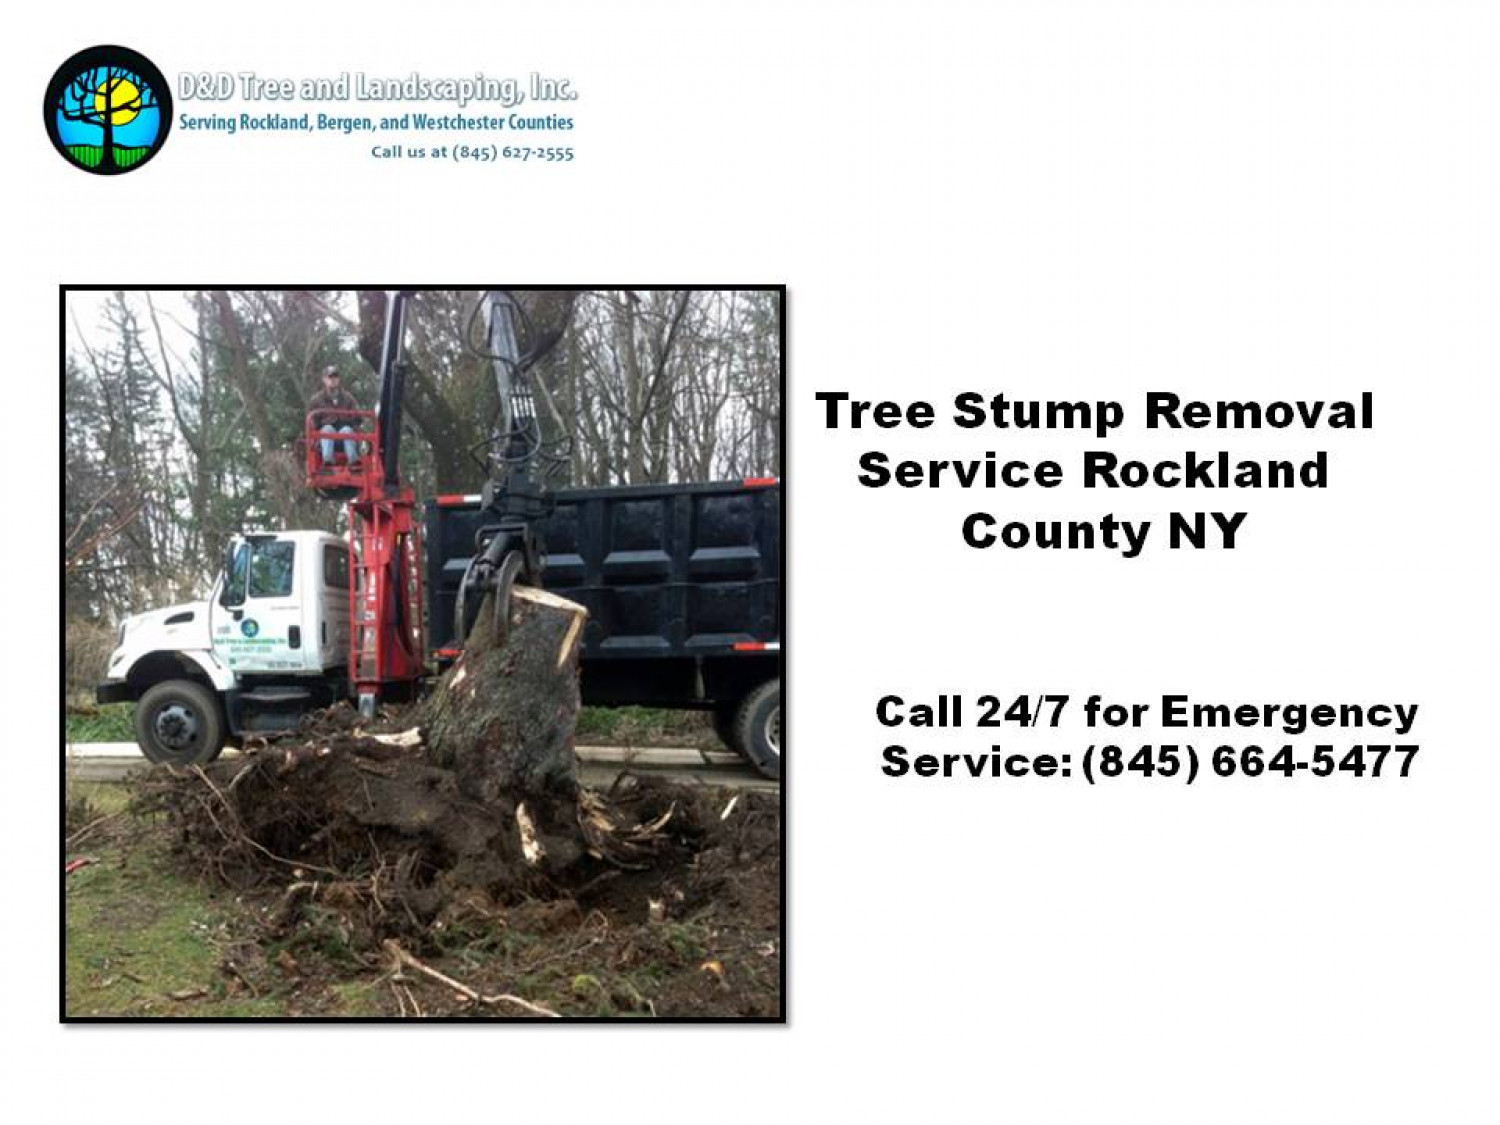 Tree Stump Removal Service Rockland County NY Infographic